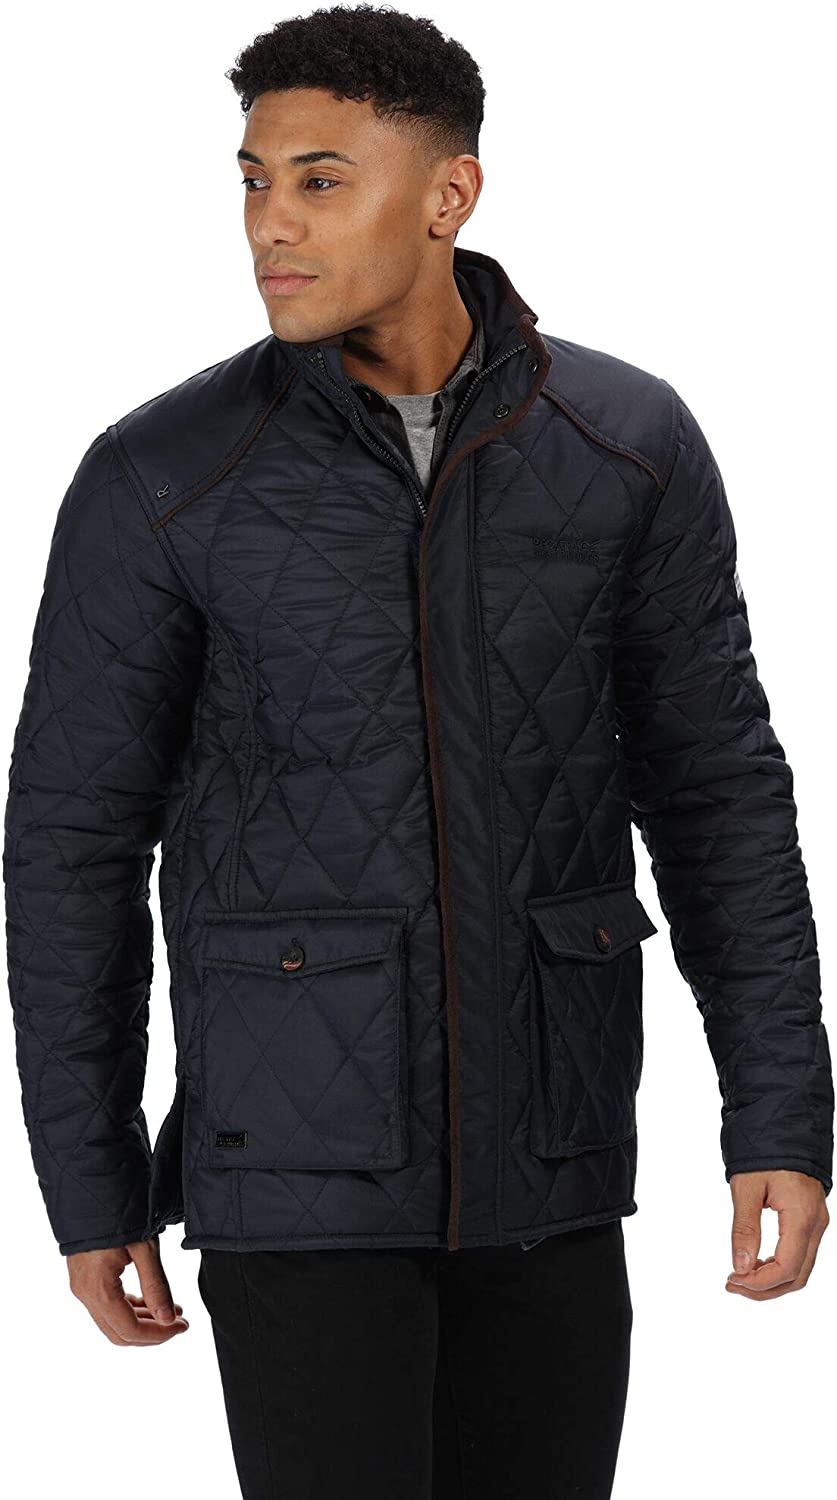 Regatta Lander Water Repellent Thermo-guard Insulated Equestrian-friendly Quilted Jacket - Chaquetas acolchadas Hombre